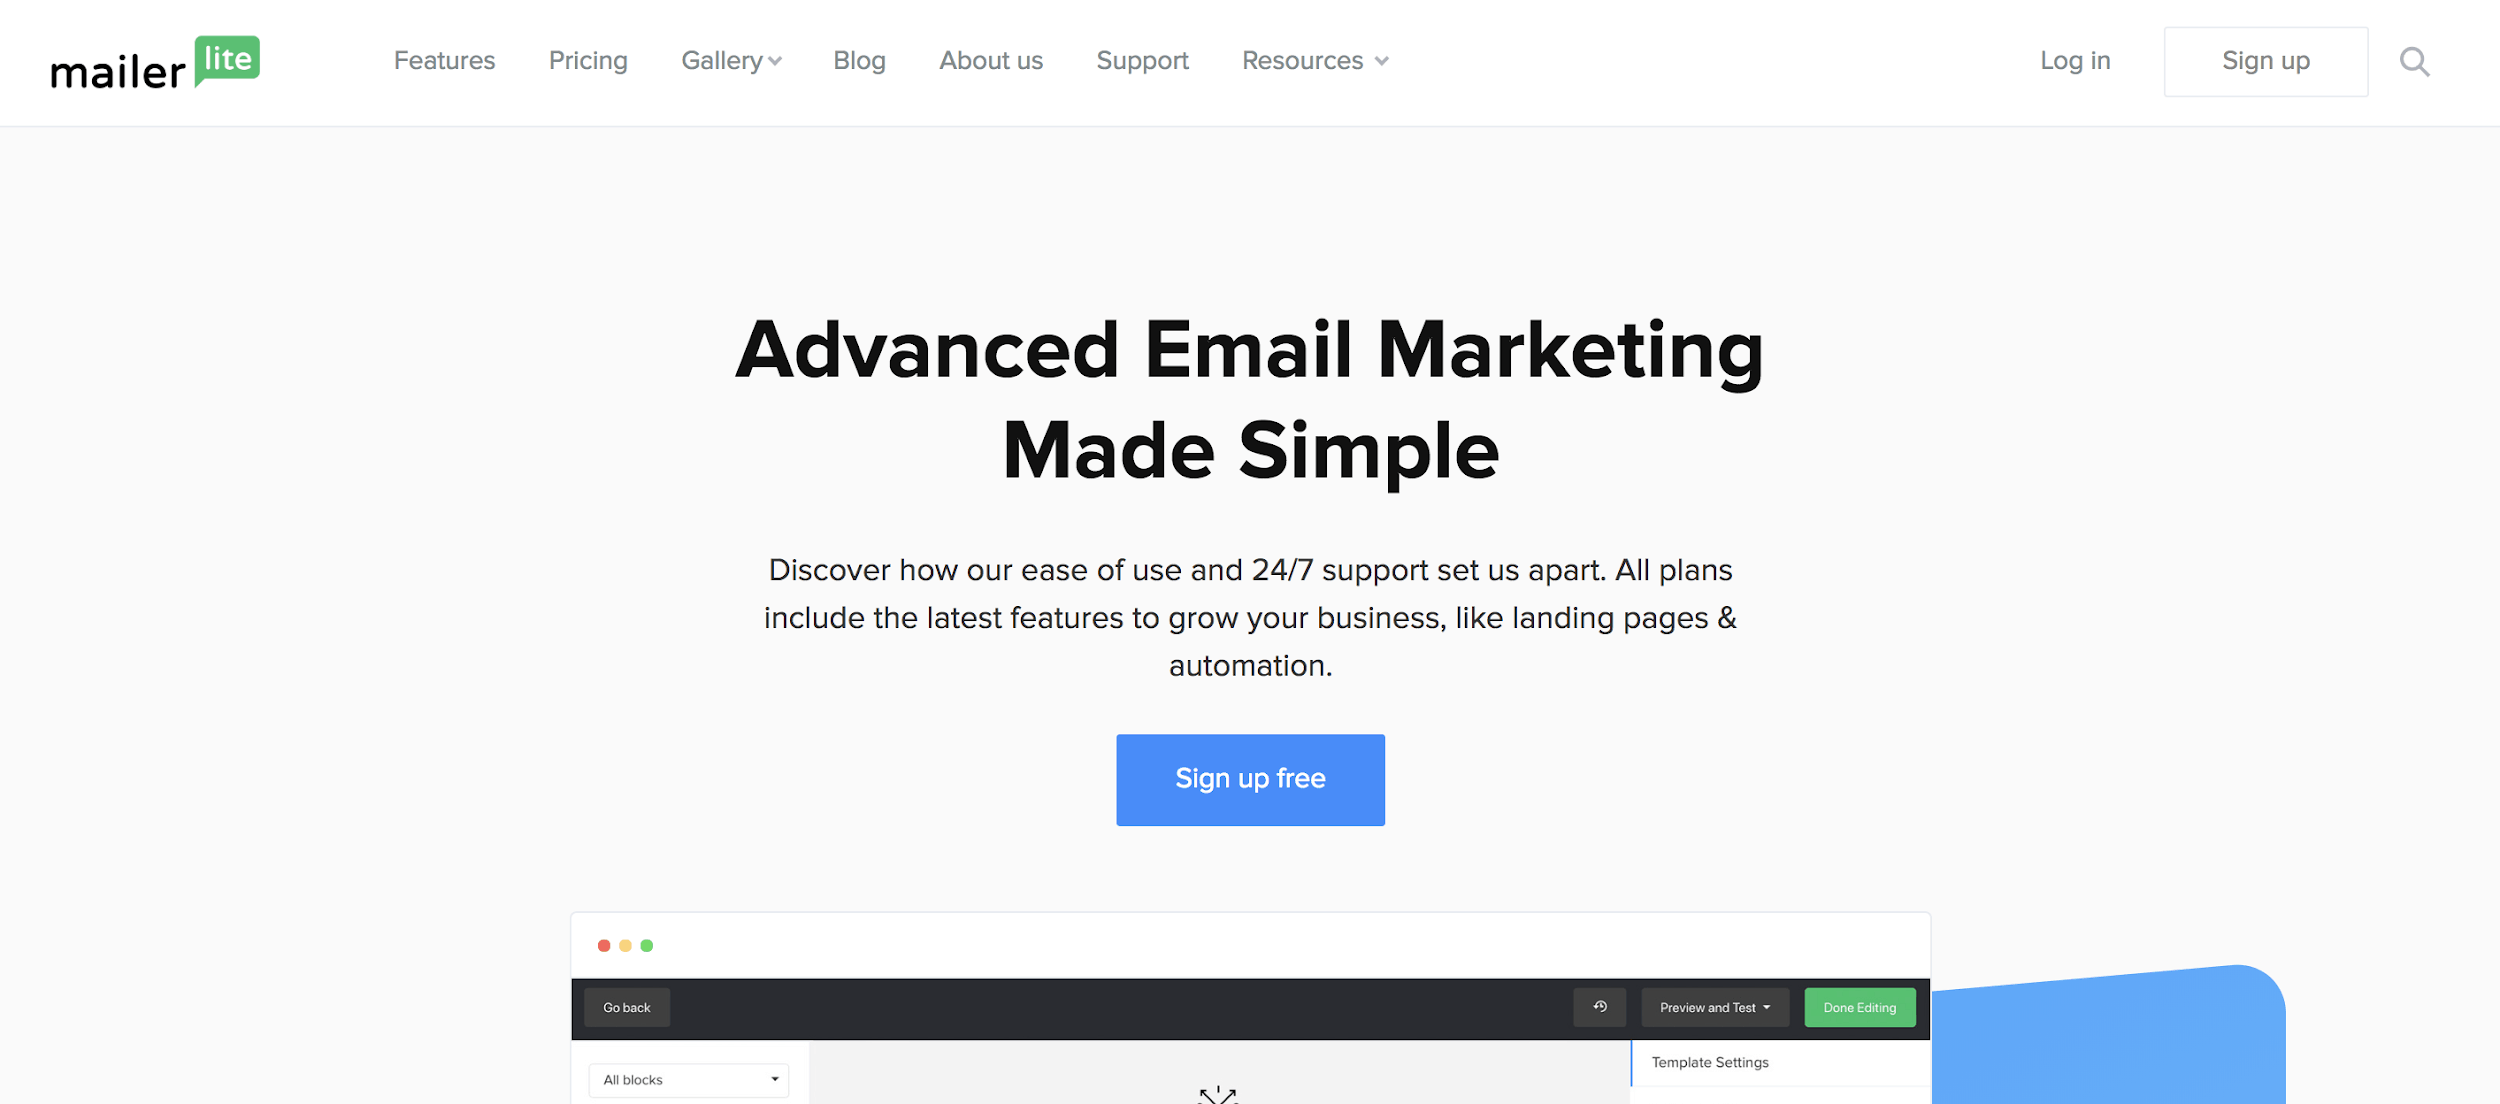 7 Best Email Marketing Services with Free Trials-image9